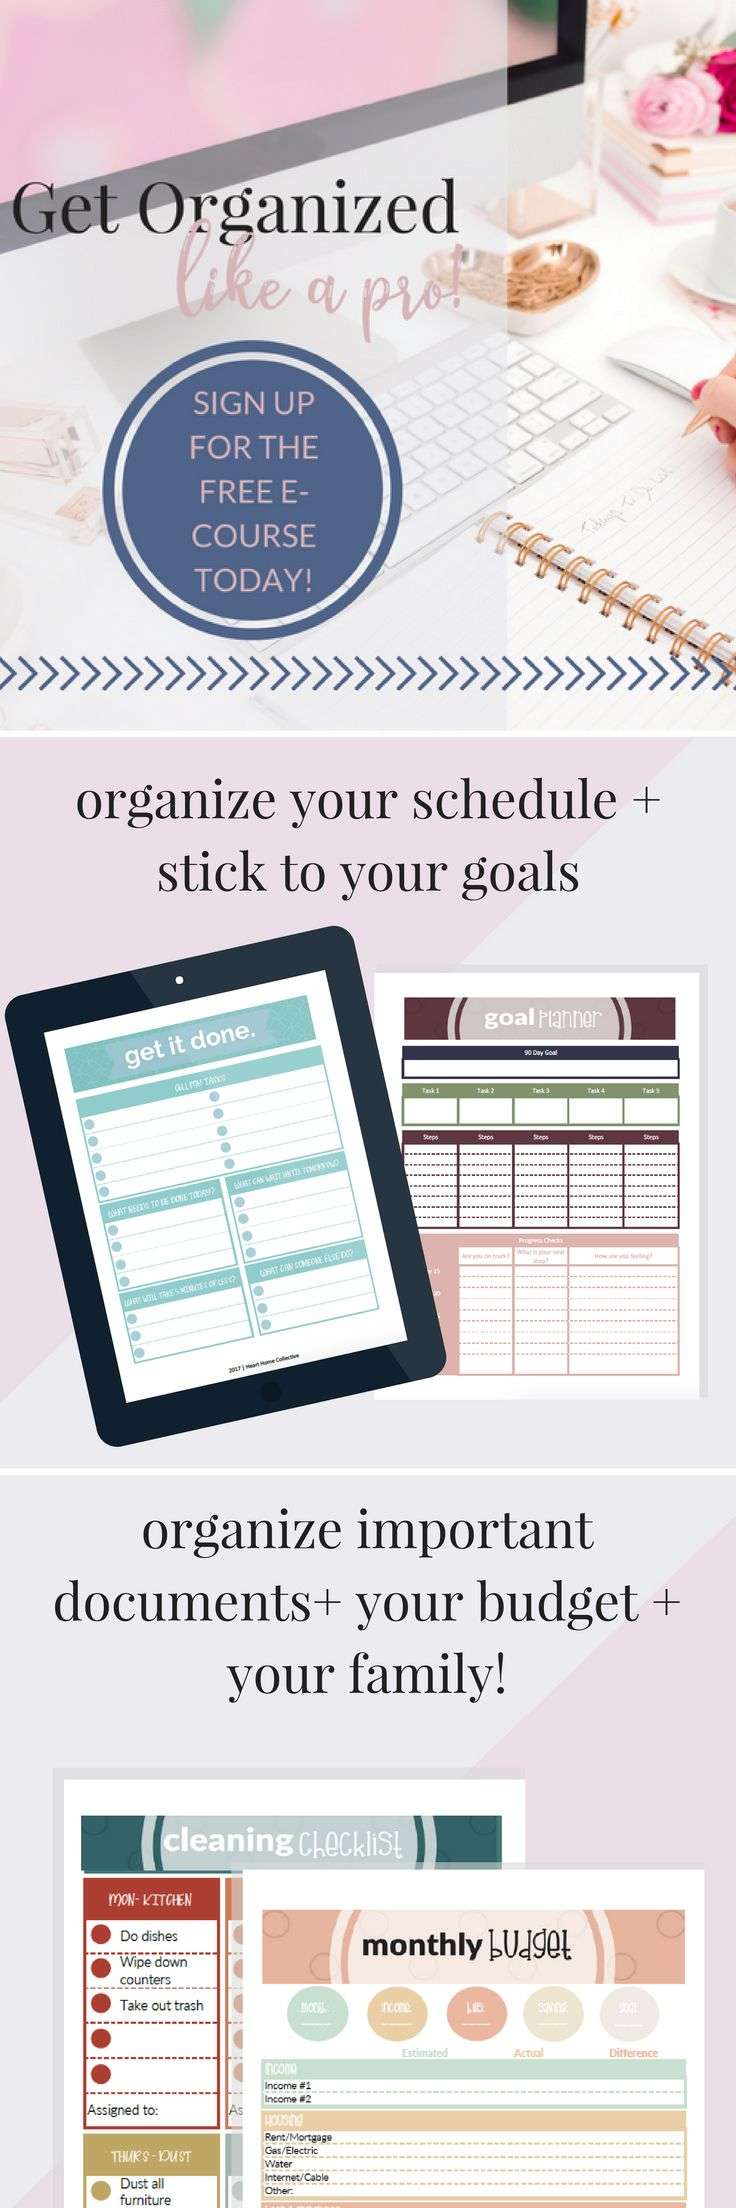 """Do you find yourself scribbling down appointments, notes, and other important info on sticky notes, scraps of paper, napkins, etc.? In this course, I'll show you: >> How to organize your schedule + overcome the overwhelm >> How to set (and stick to) 90 day goals >> How to find the organization system that works for you, because organization isn't """"One Size Fits All"""" >> How to organize your budget + spending >> How to get your family on the organization bandwagon (and keep them there!)"""